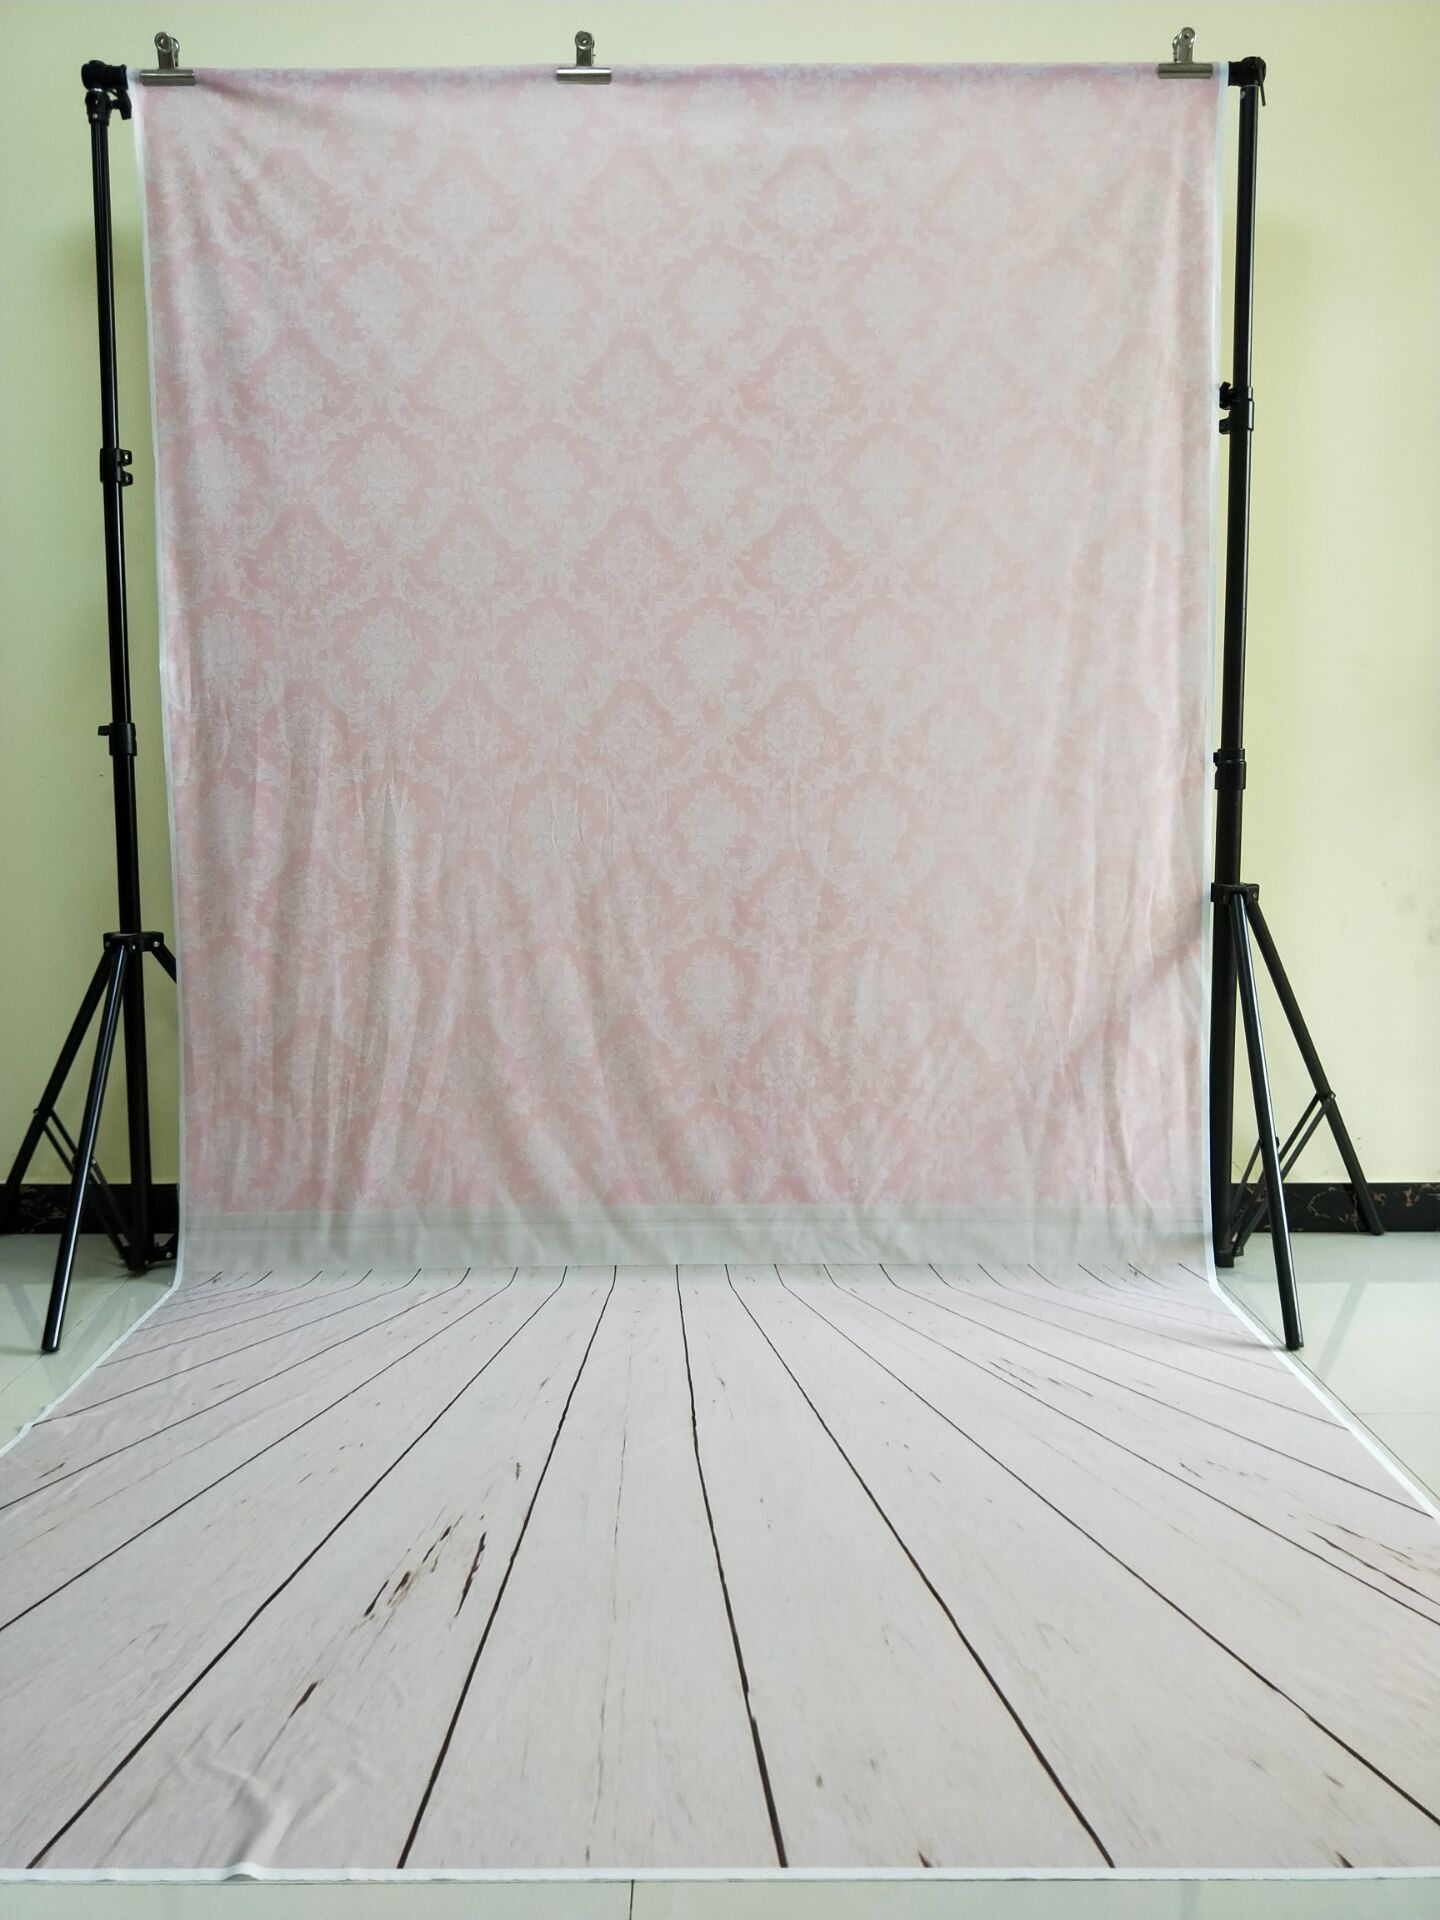 HUAYI 5x10ft Cotton Polyester Pink Damask Photography Backdrop Washable Photo Studios Baby Props Background KP-052 huayi love photography backdrop scenery custom photo portrait studios background valentine s day backdrop xt4838